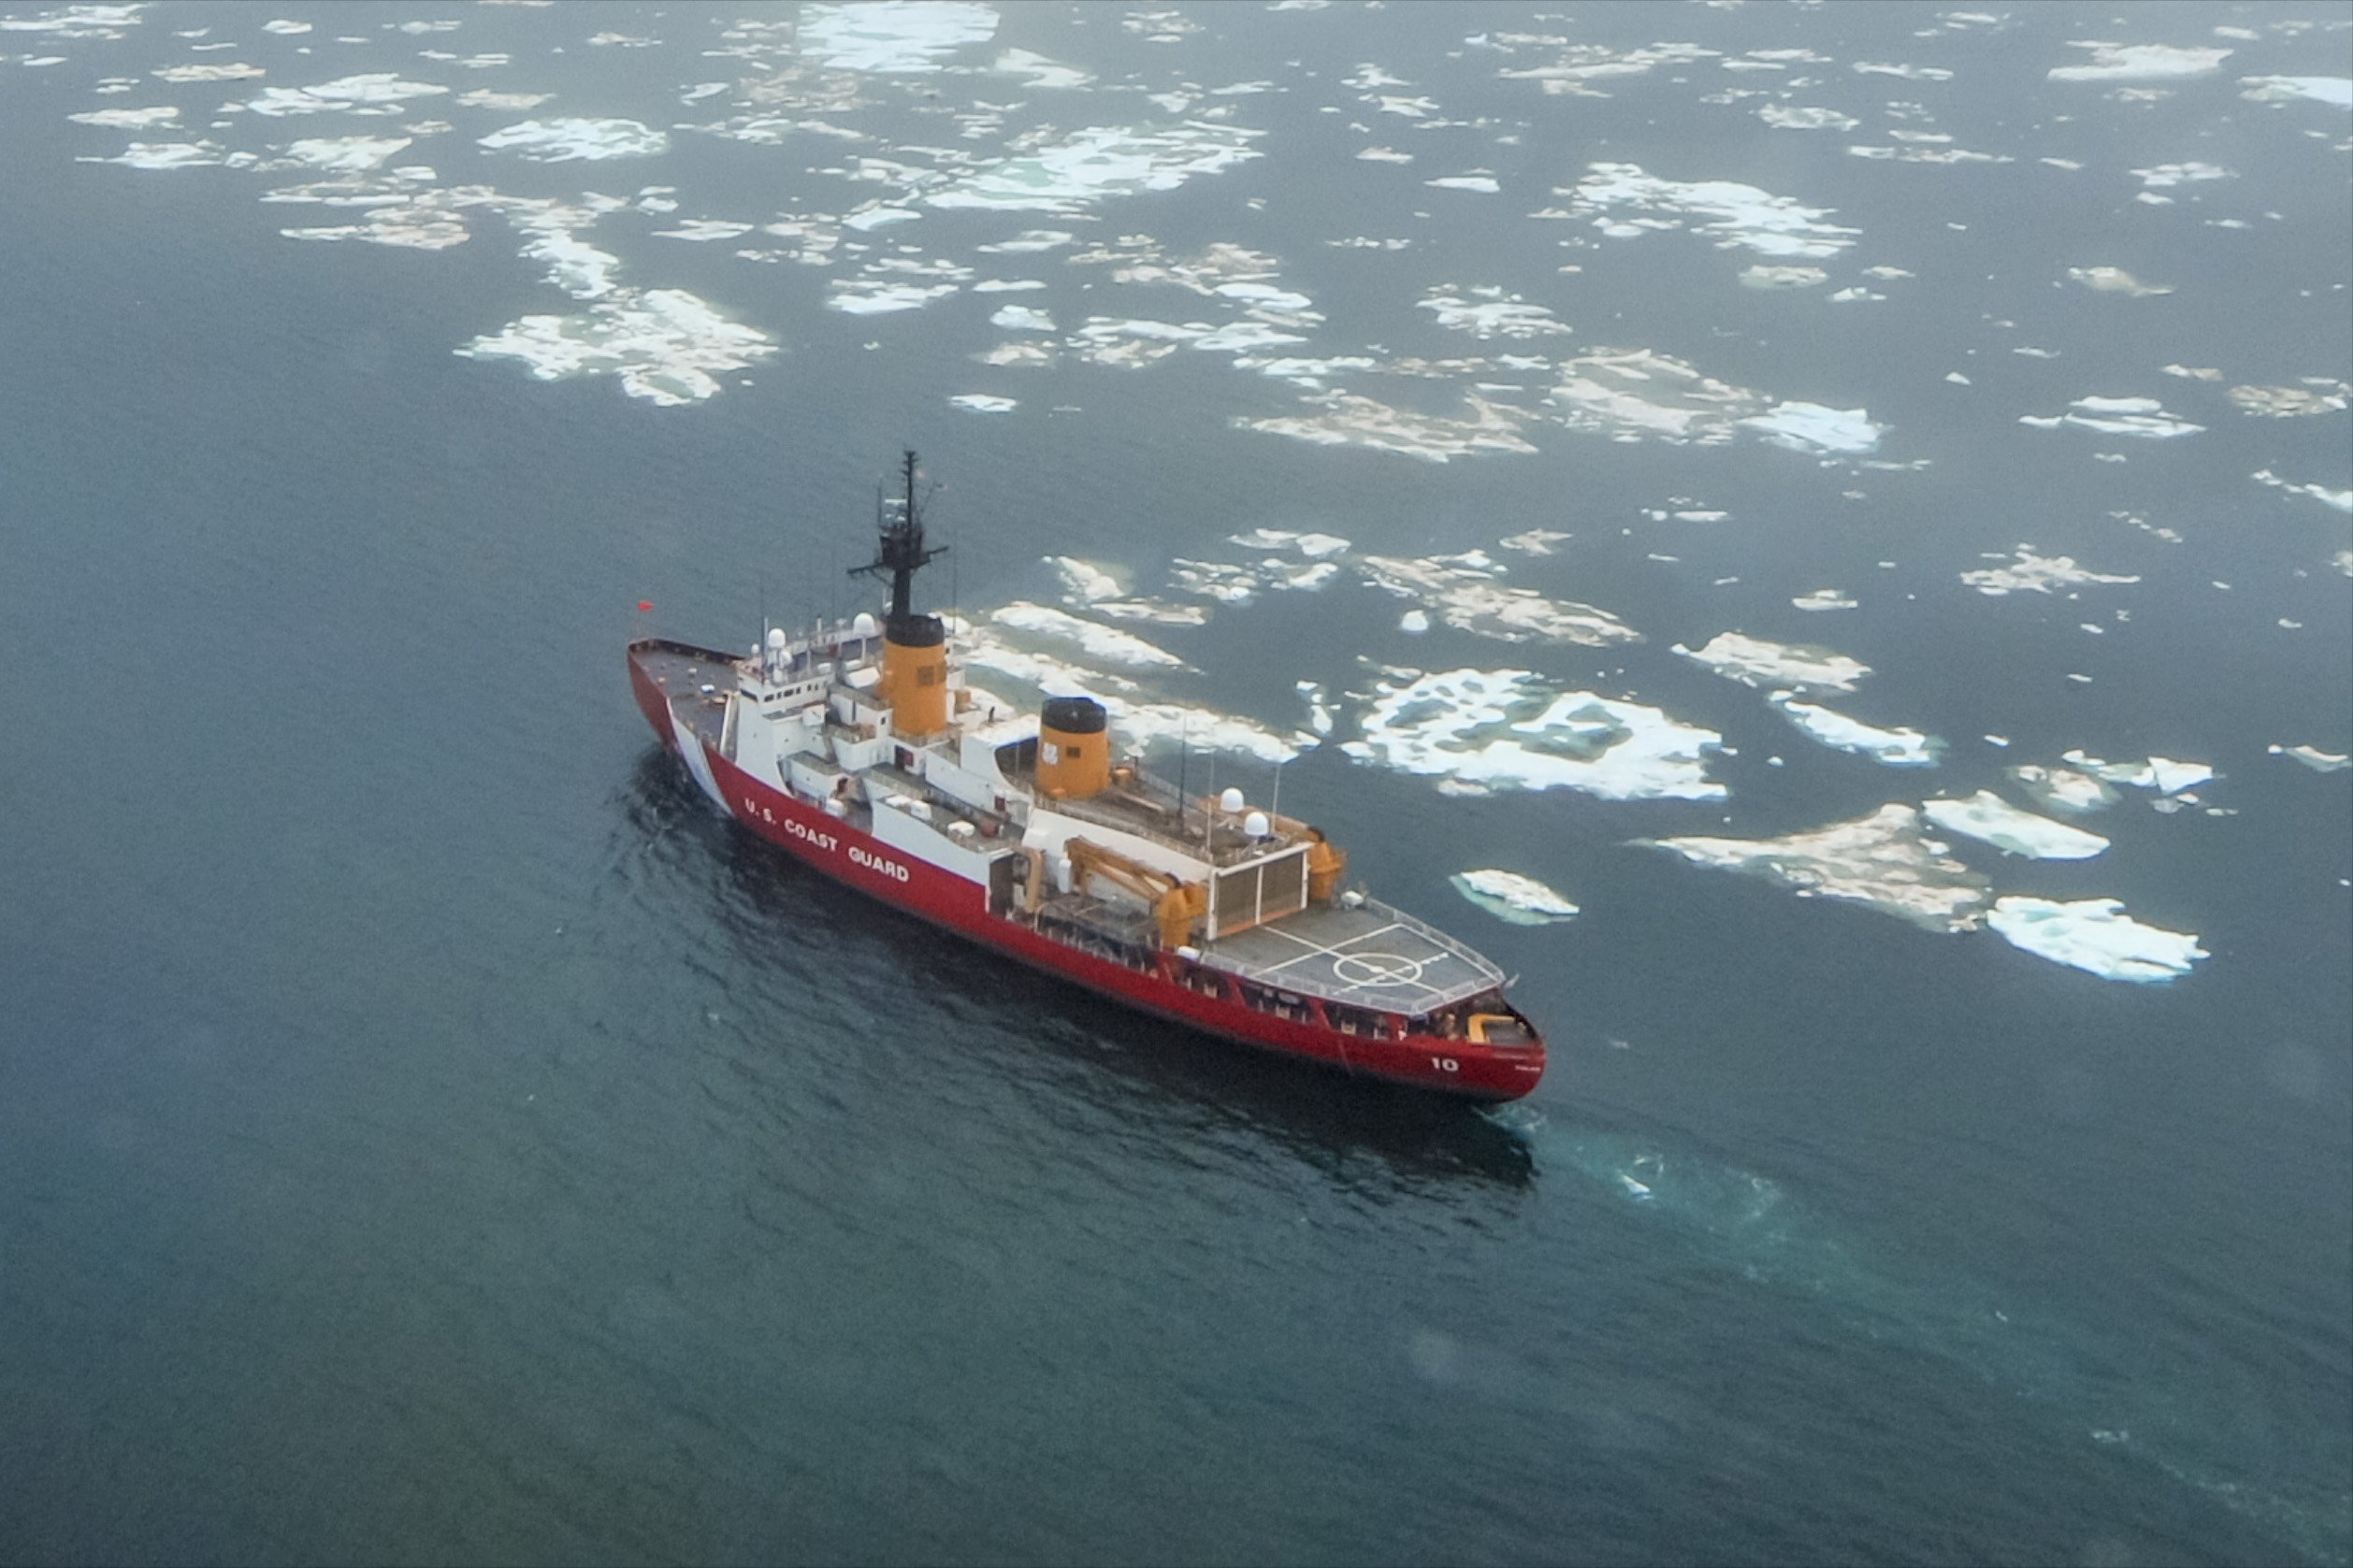 The Polar Code heralds a new era of safer navigation in Arctic waters